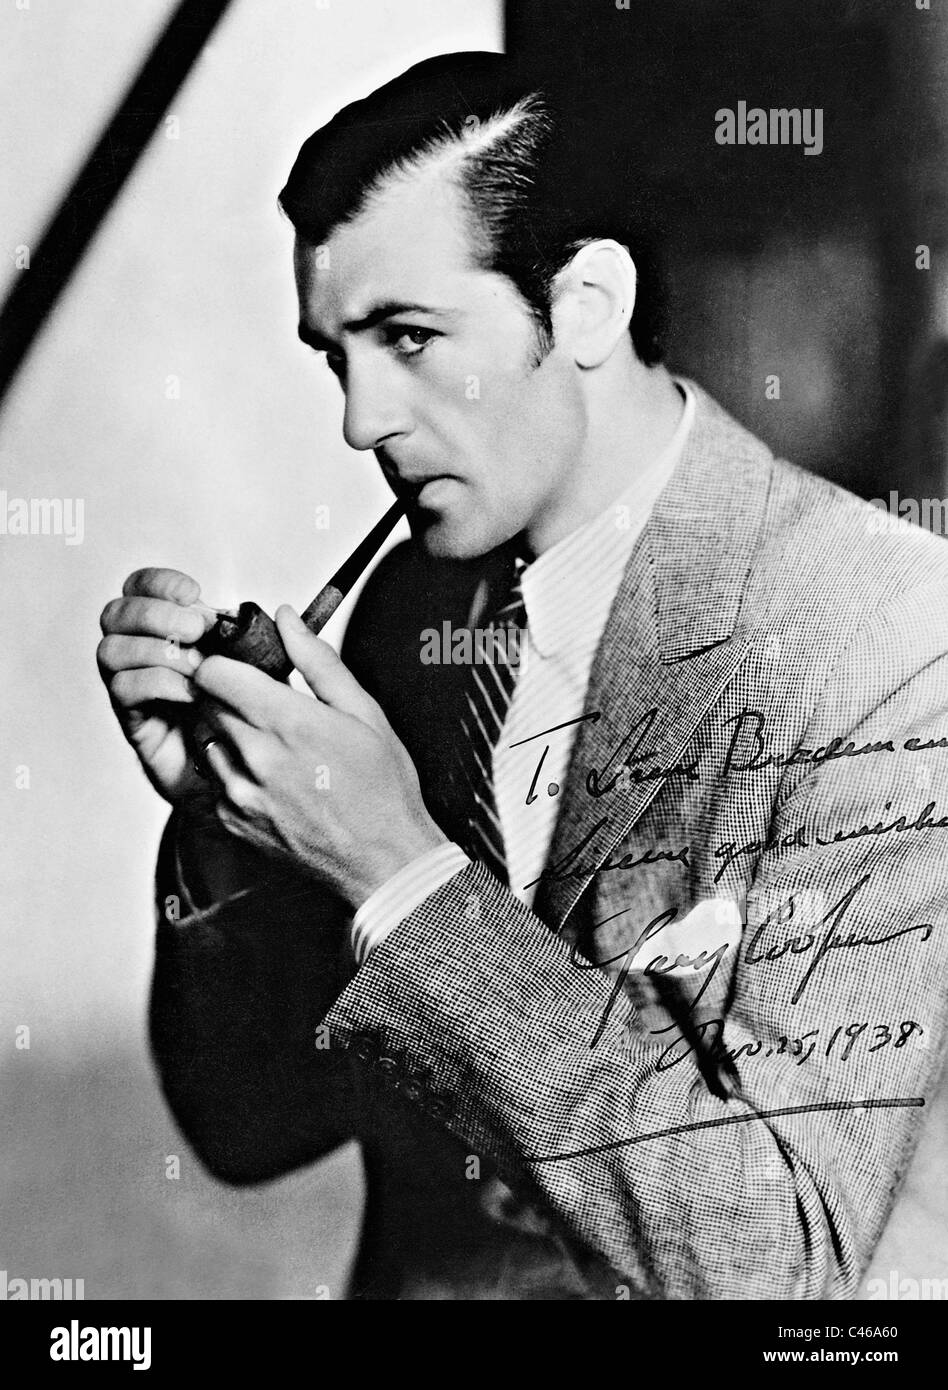 Signed photo of Gary Cooper - Stock Image